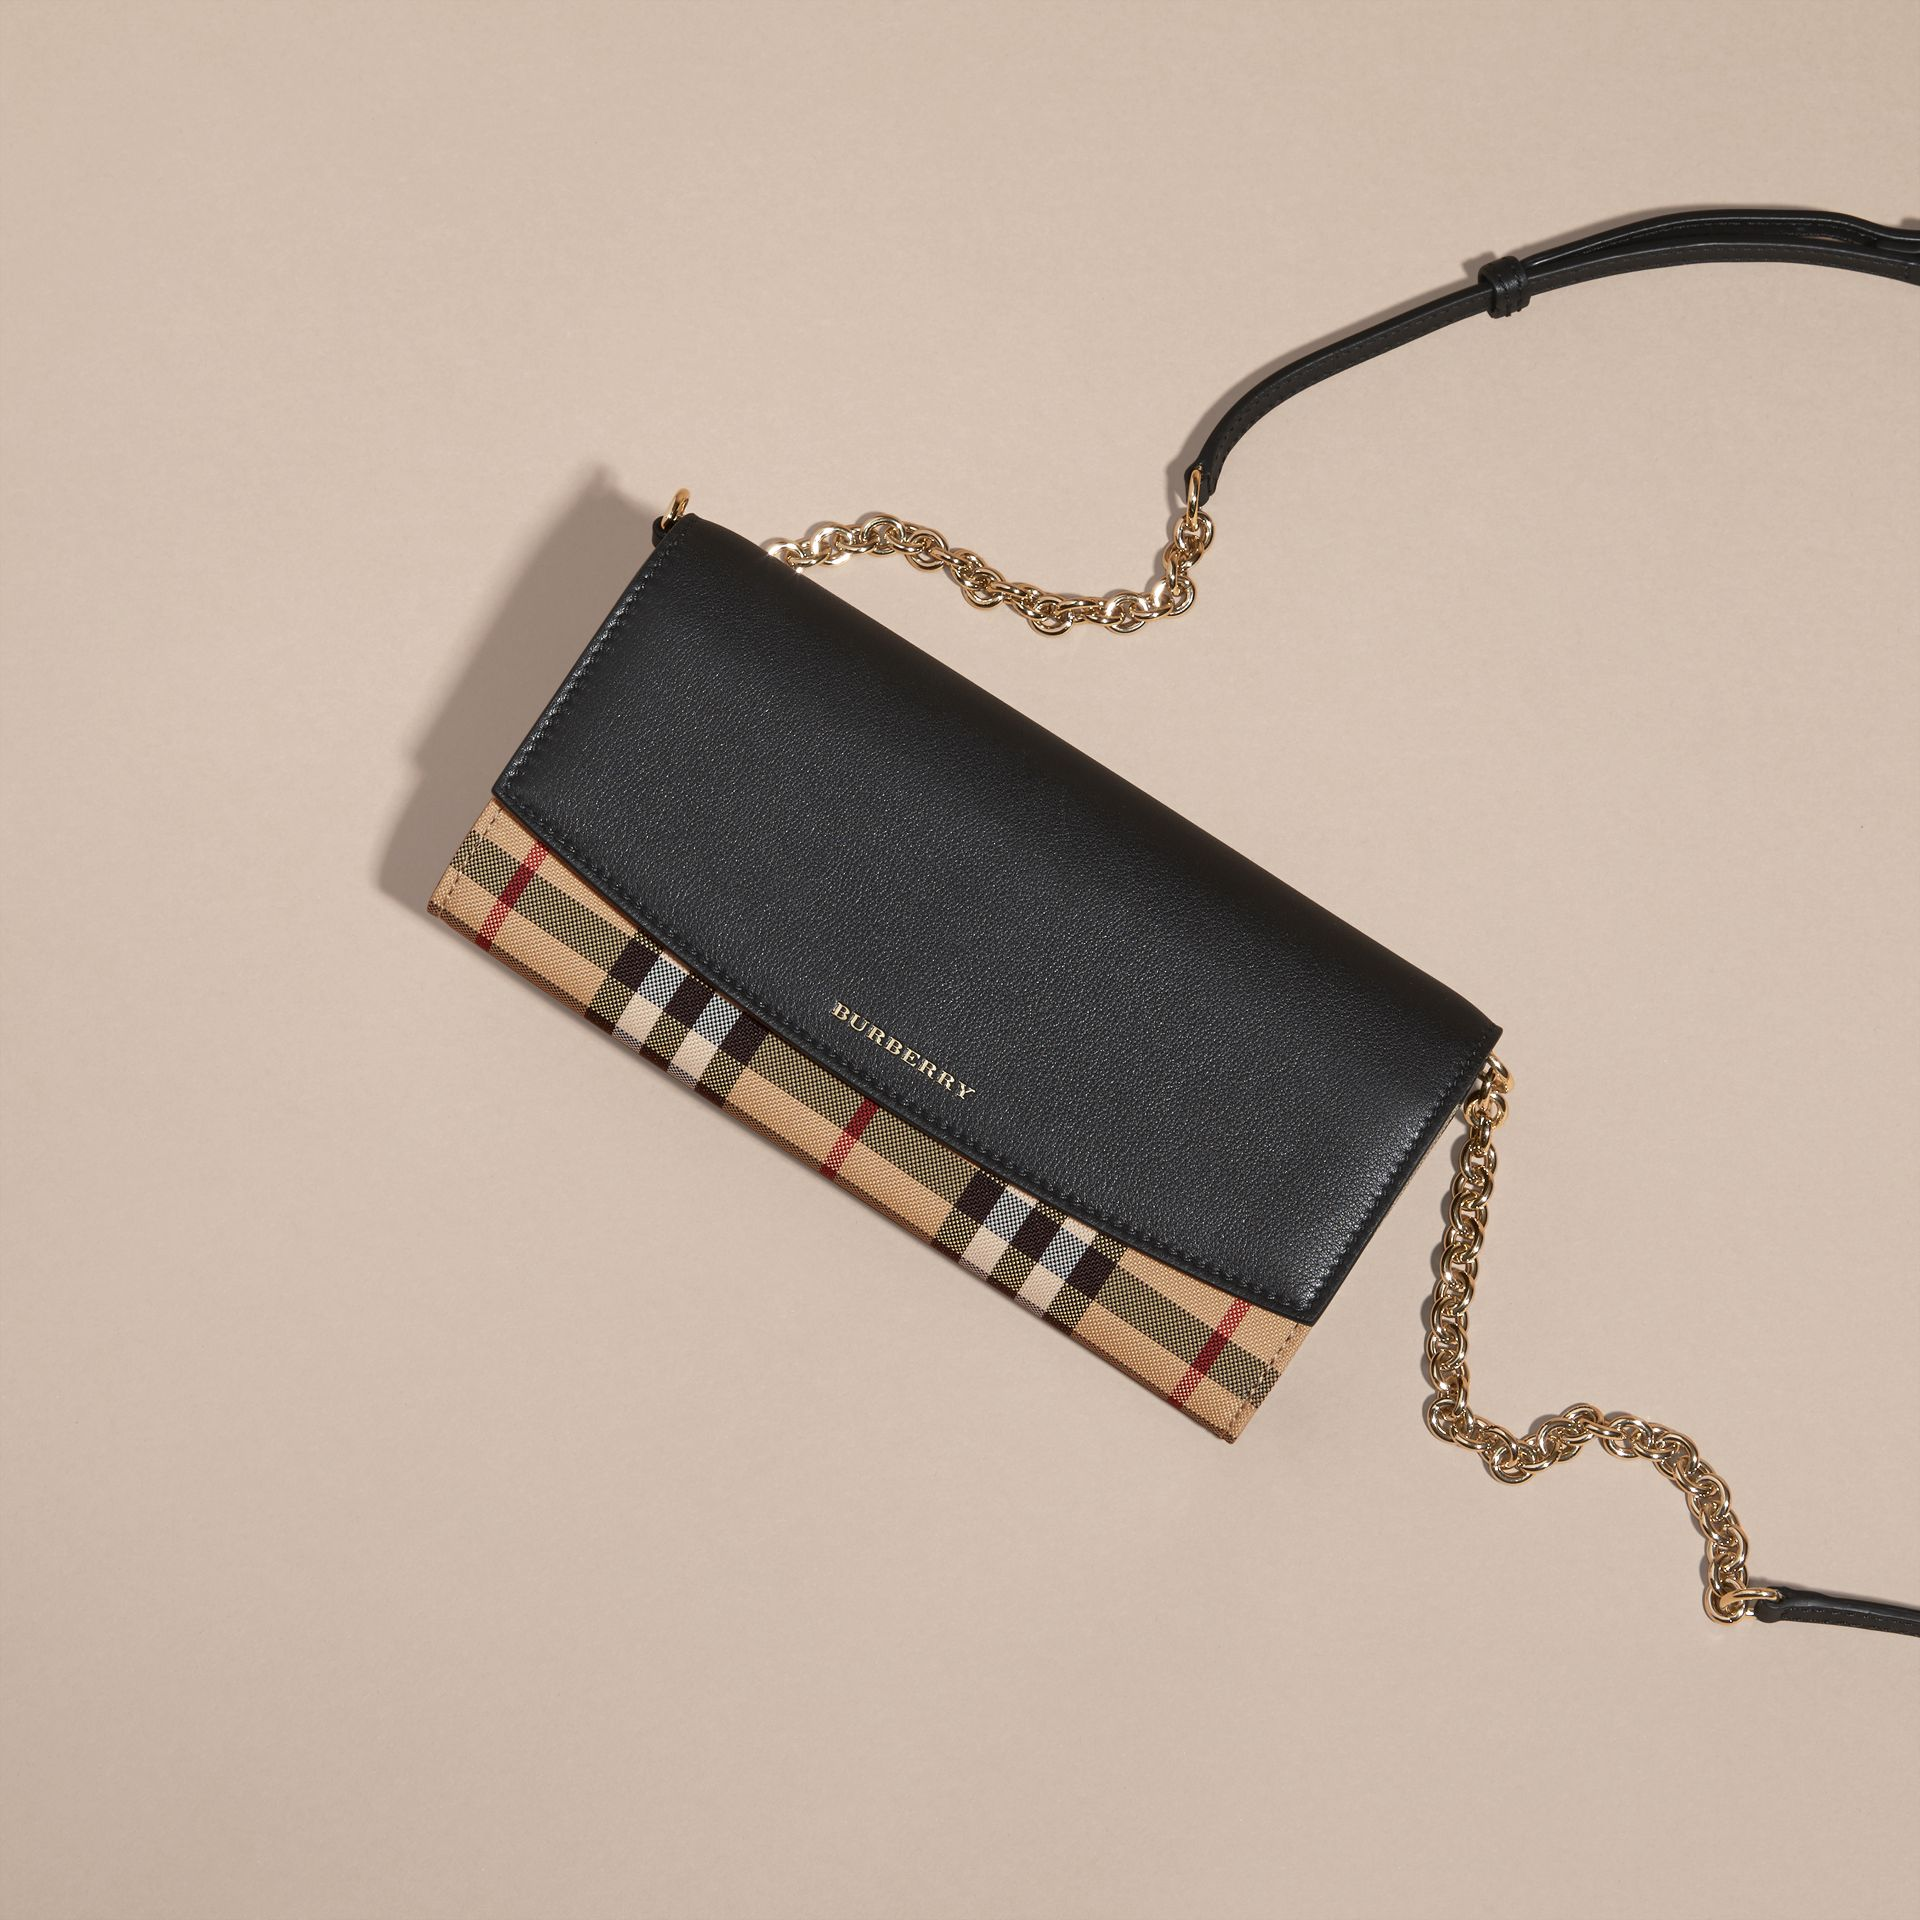 Horseferry Check and Leather Wallet with Chain in Black - Women | Burberry - gallery image 6